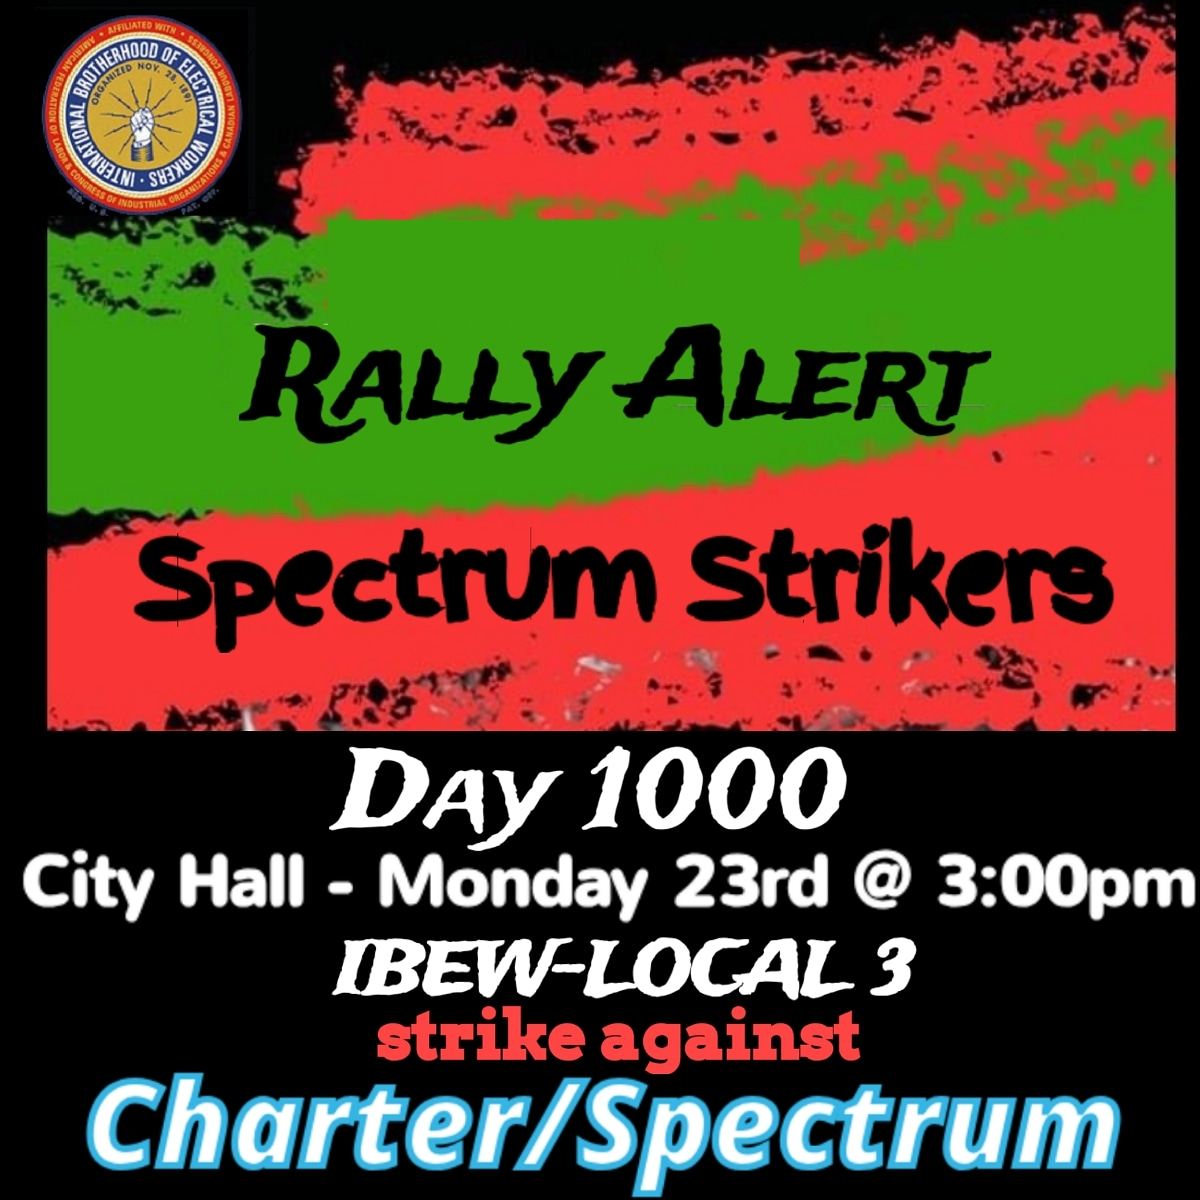 SHARE SHARE SHARE!!! #UNIONSTRONG #SPECTRUMSTRIKE #LOCAL3<br>http://pic.twitter.com/70FIRBxZBF